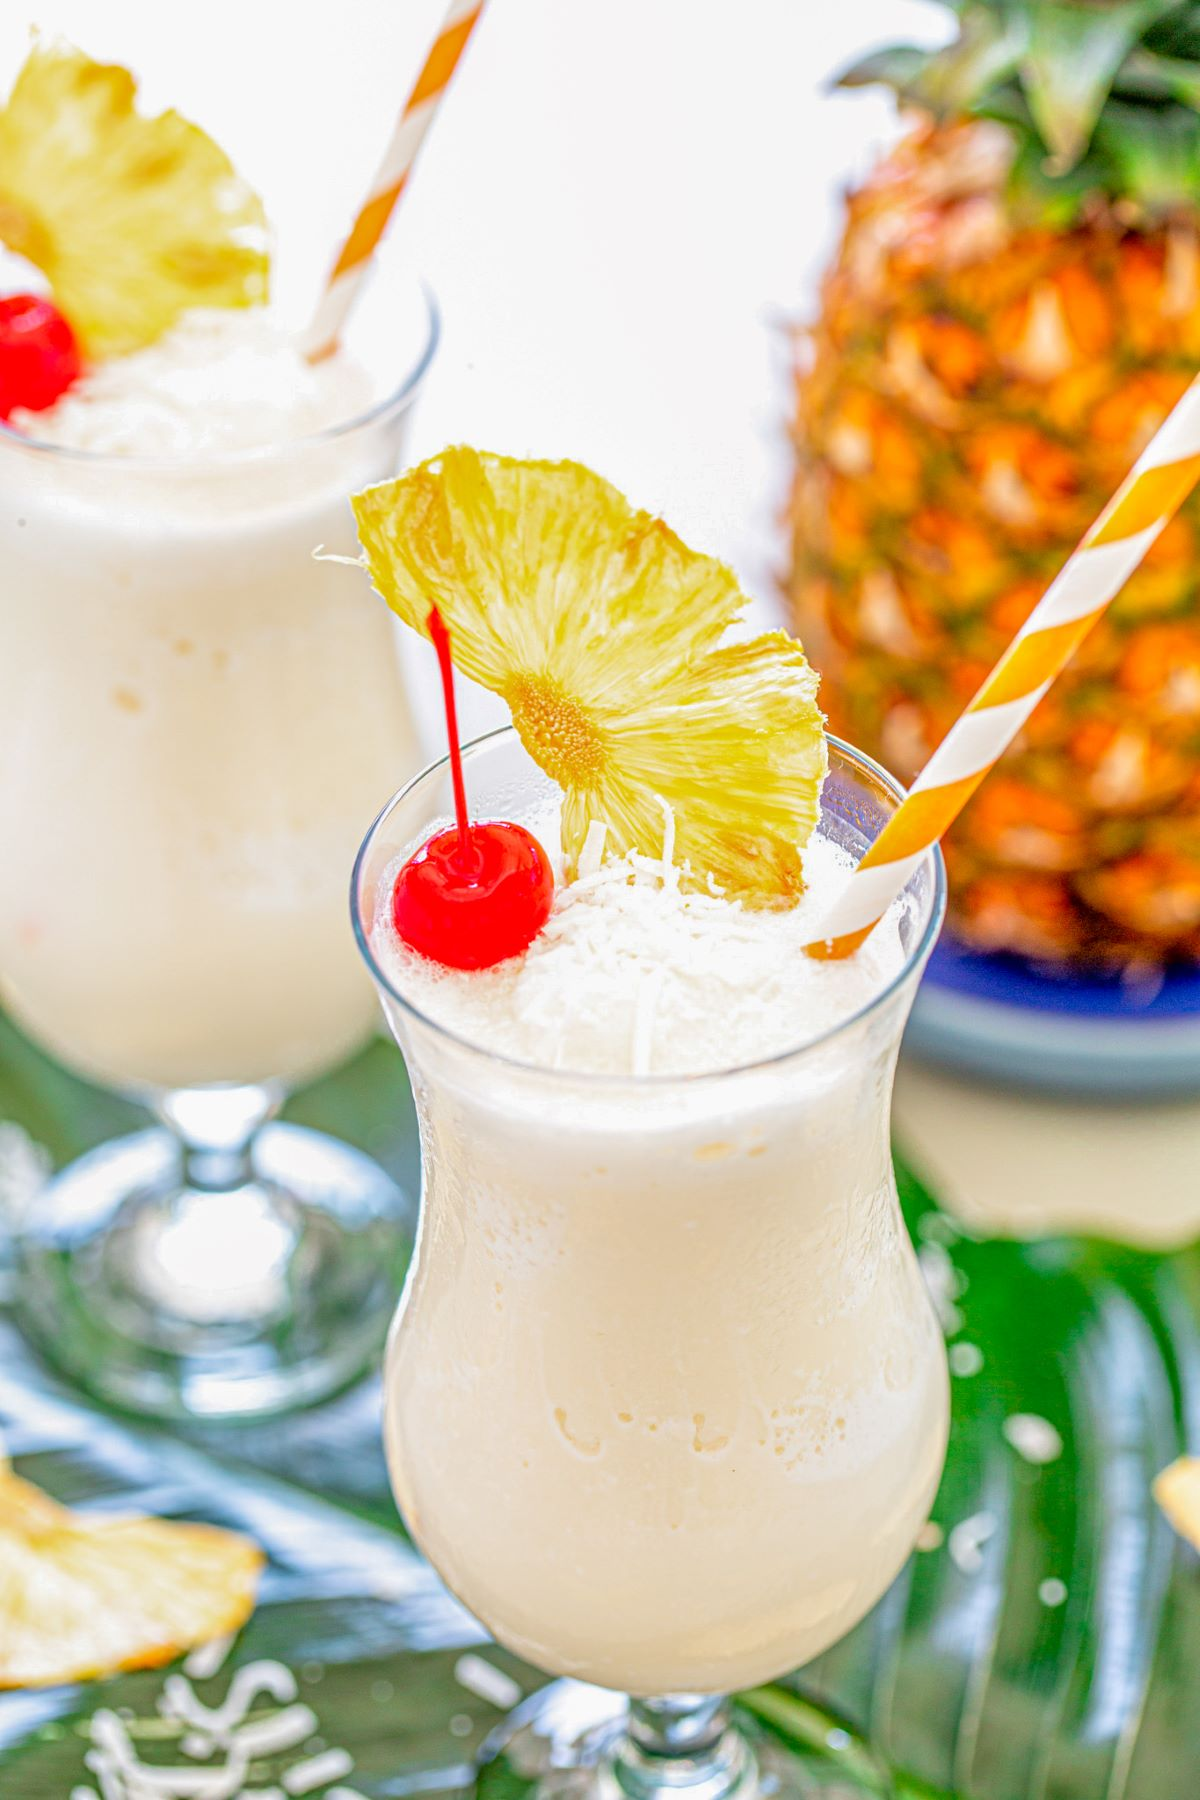 Two pina coladas garnished with a red cherry, dried pineapple wedge, and shredded coconut.